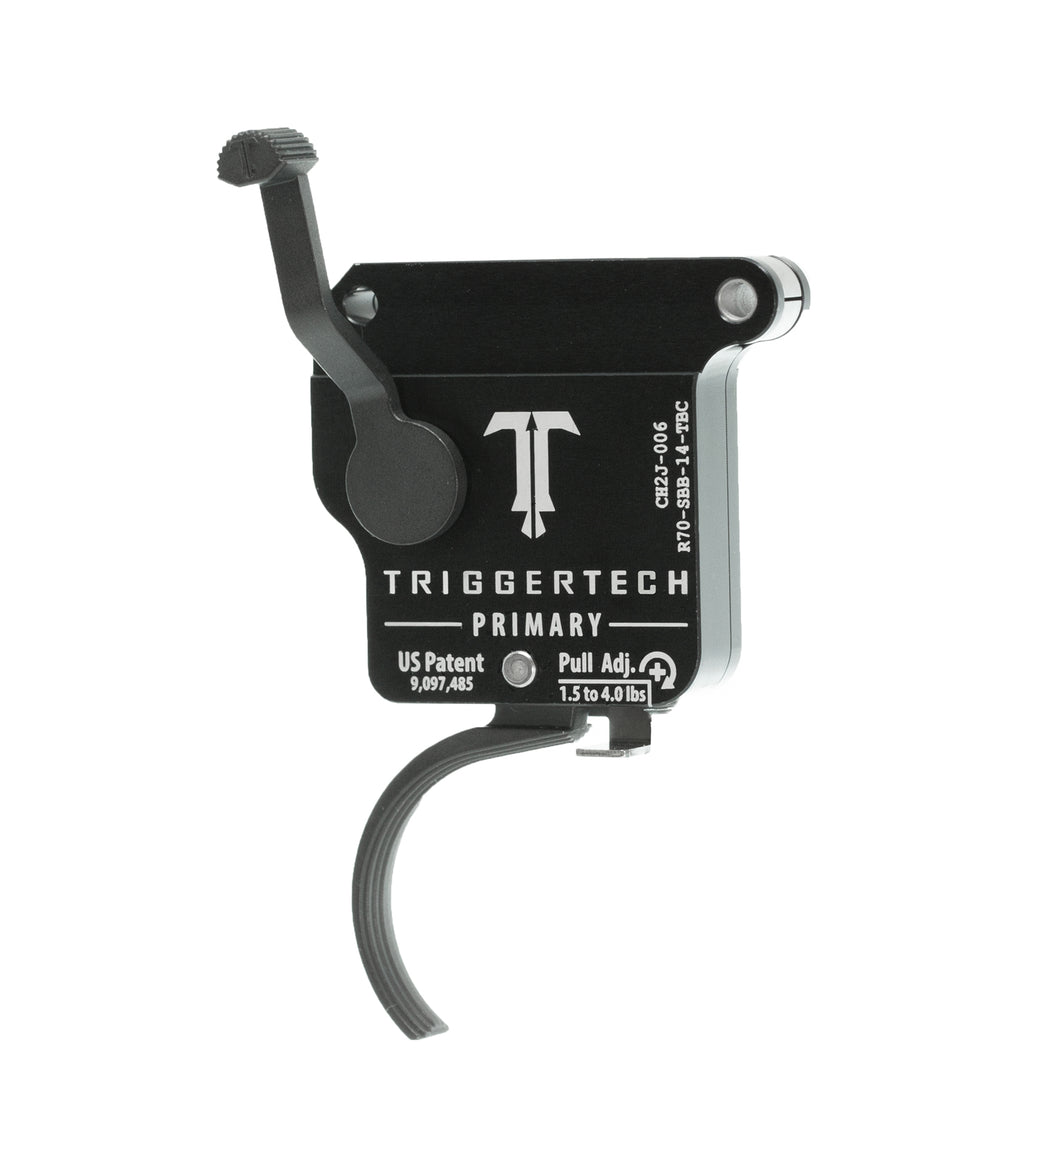 Triggertech Primary PVD Black curved